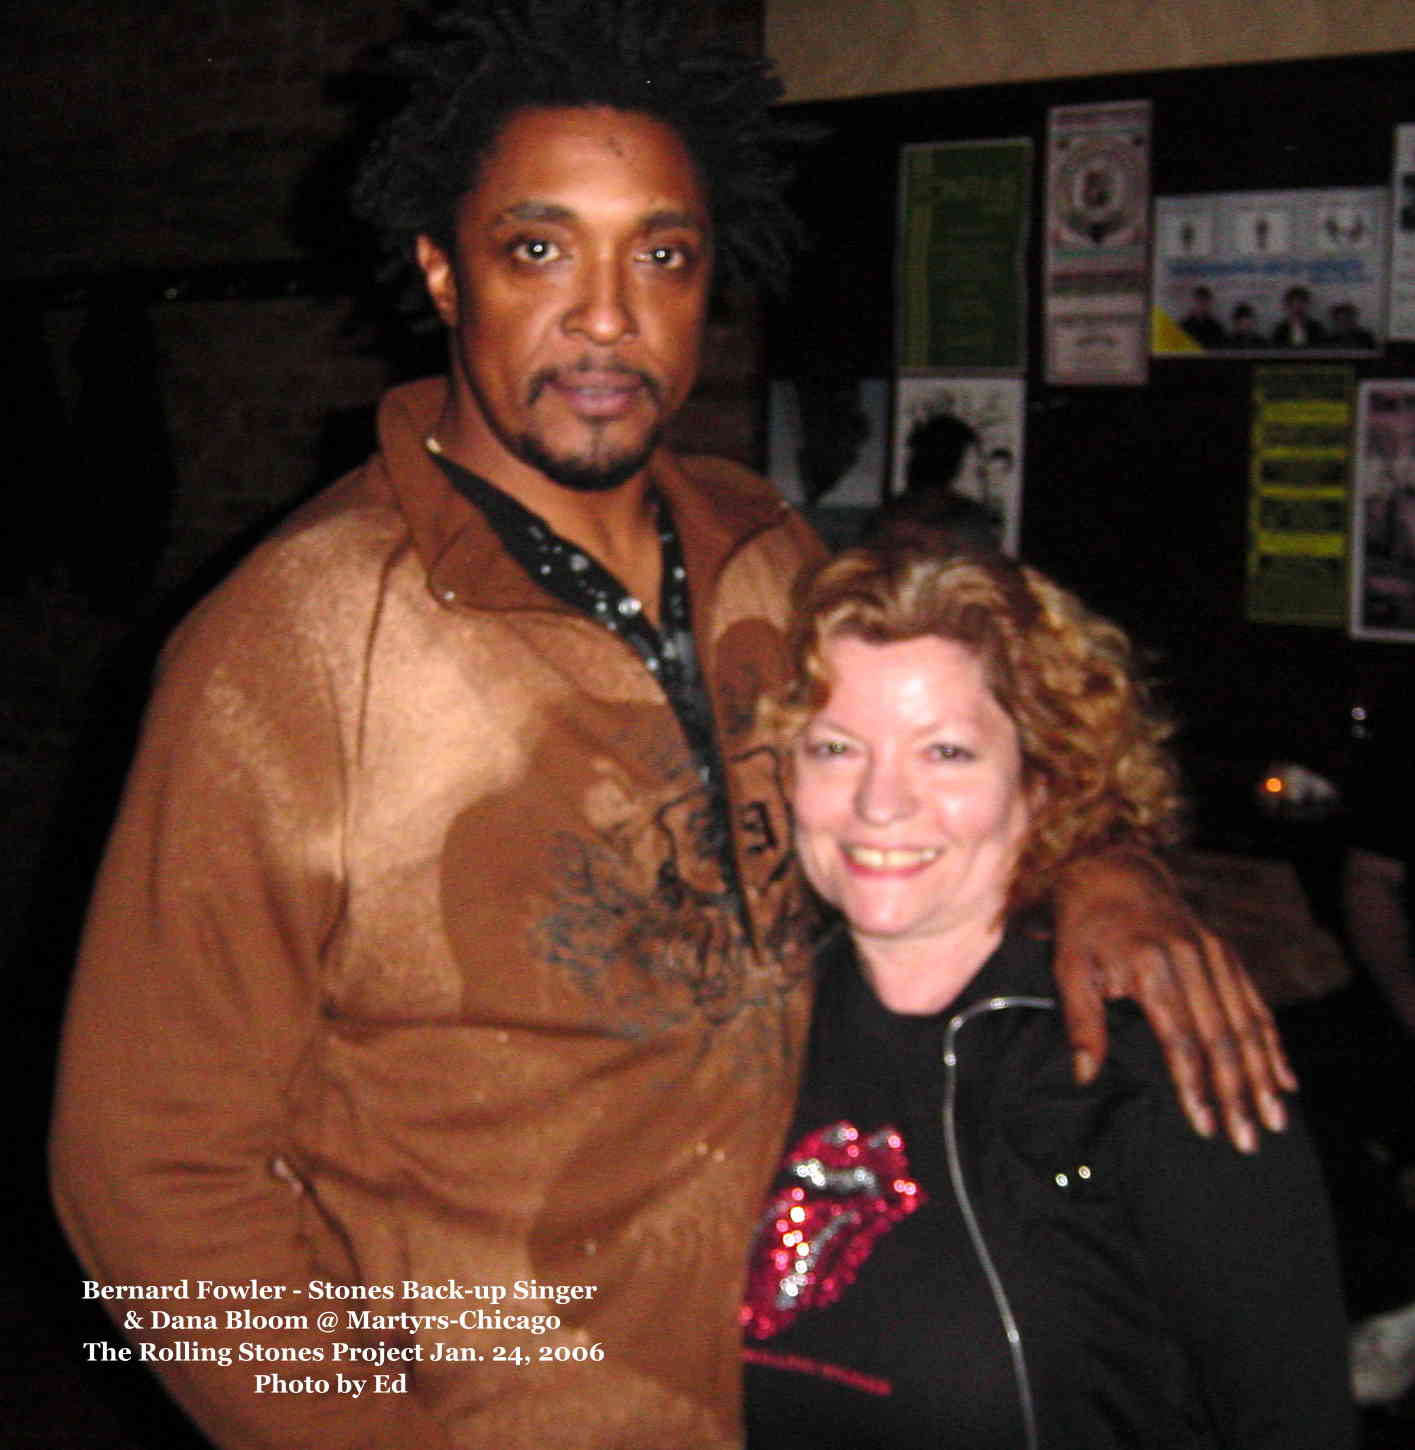 Bernard Fowler singer with The Rolling Stones & Dana